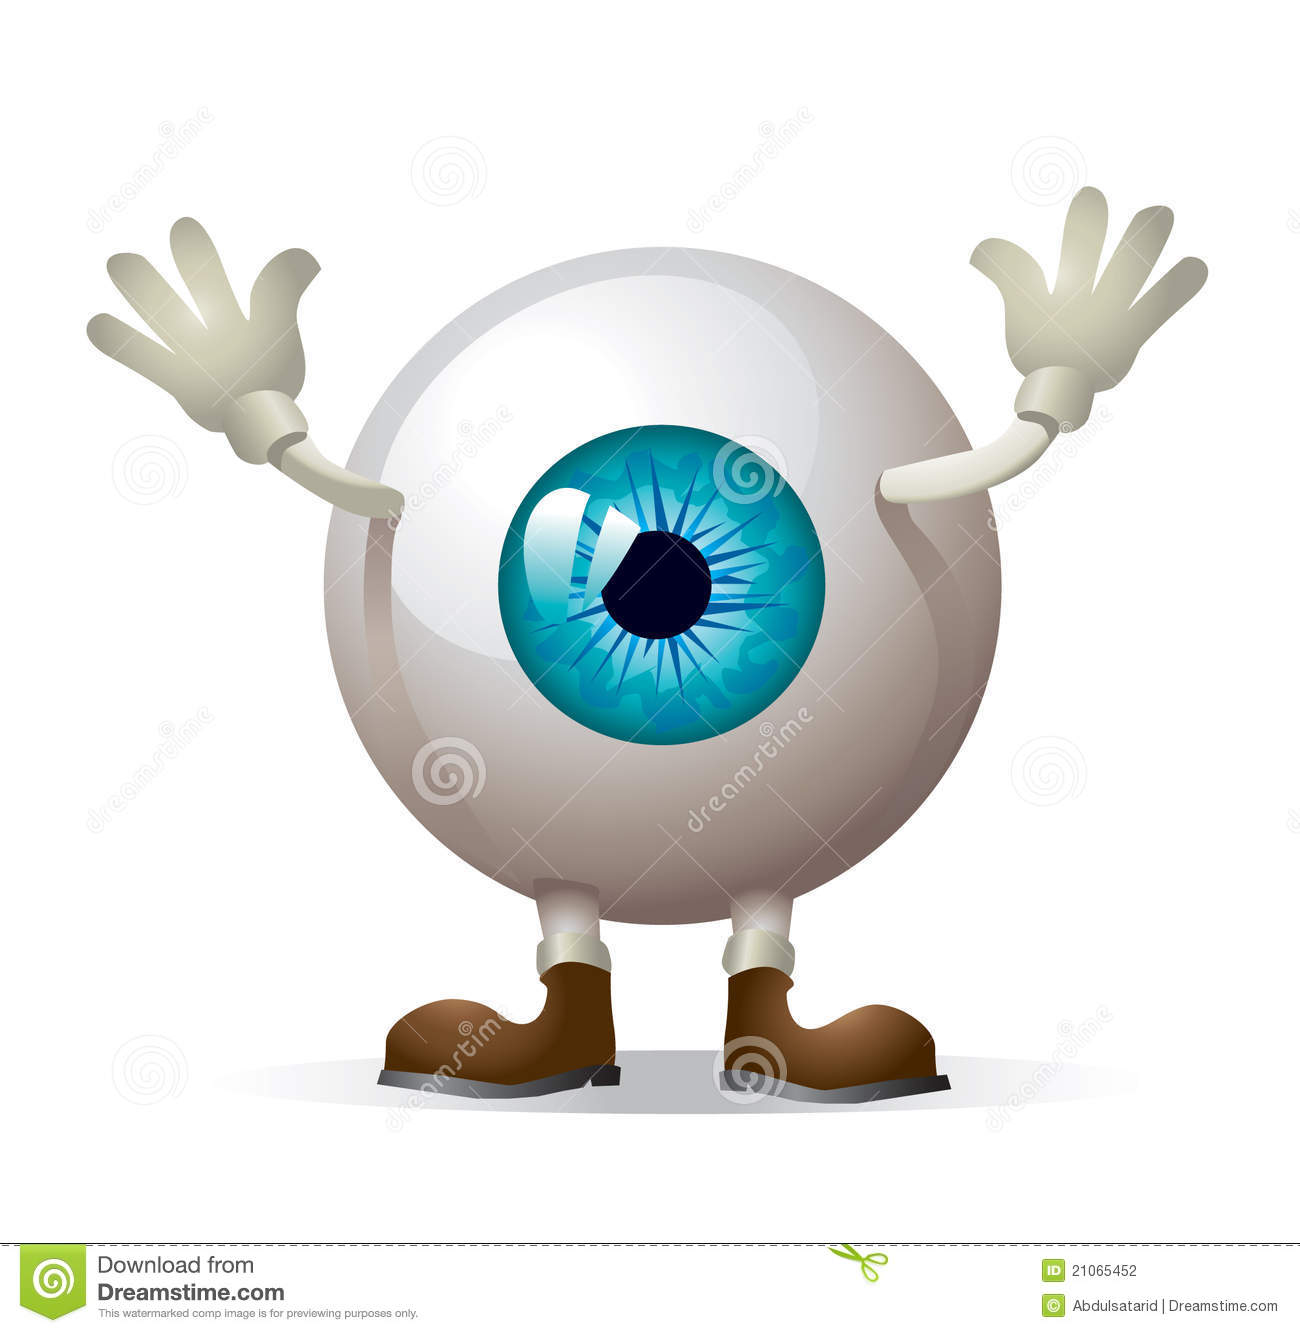 eyeball illustration